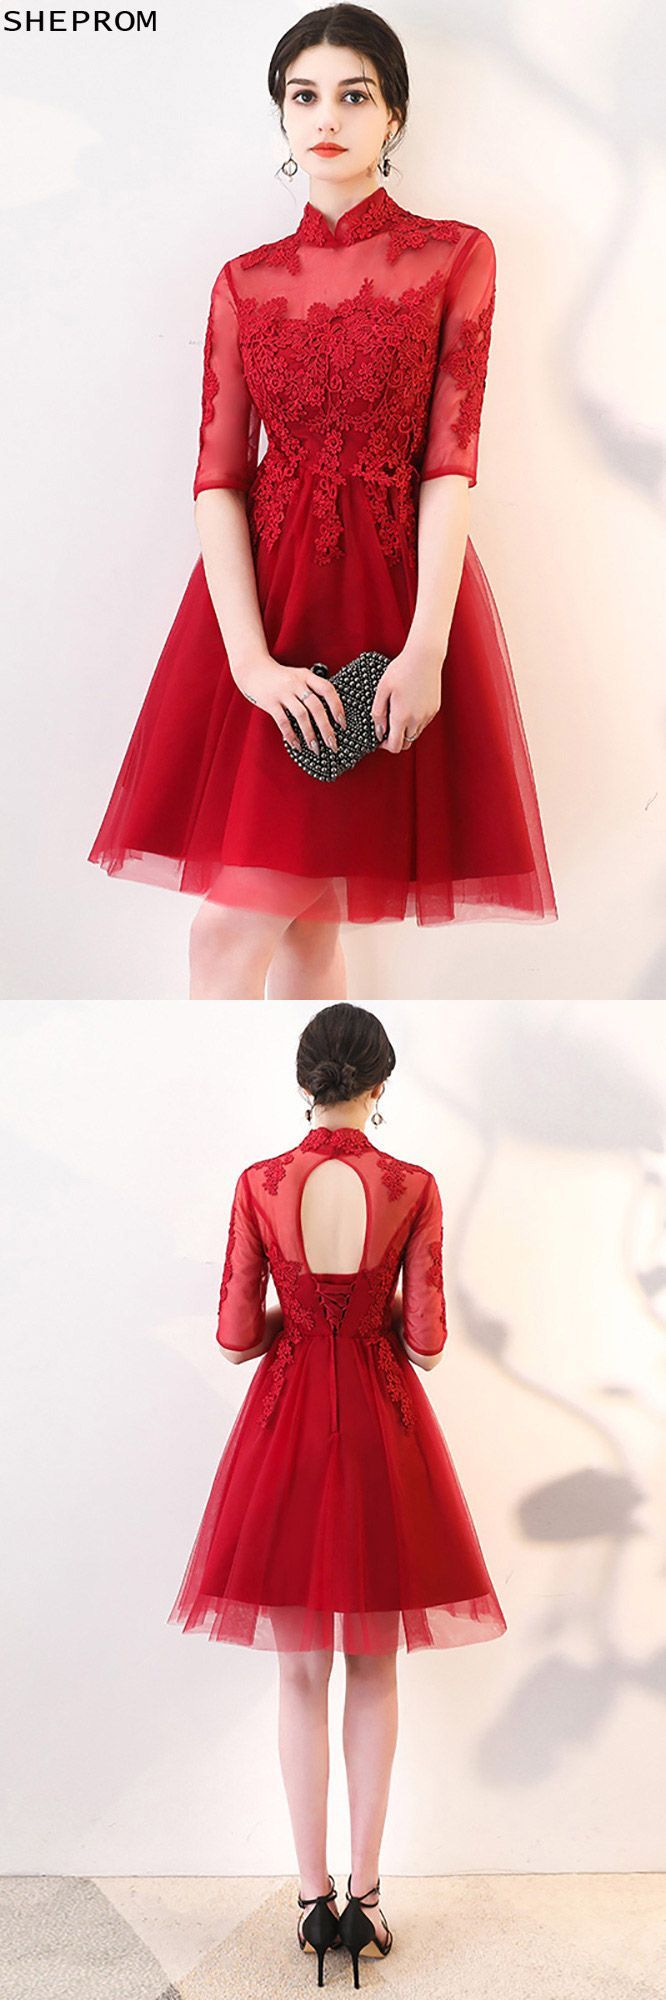 Red lace burgundy red homecoming prom dress tulle with sleeves